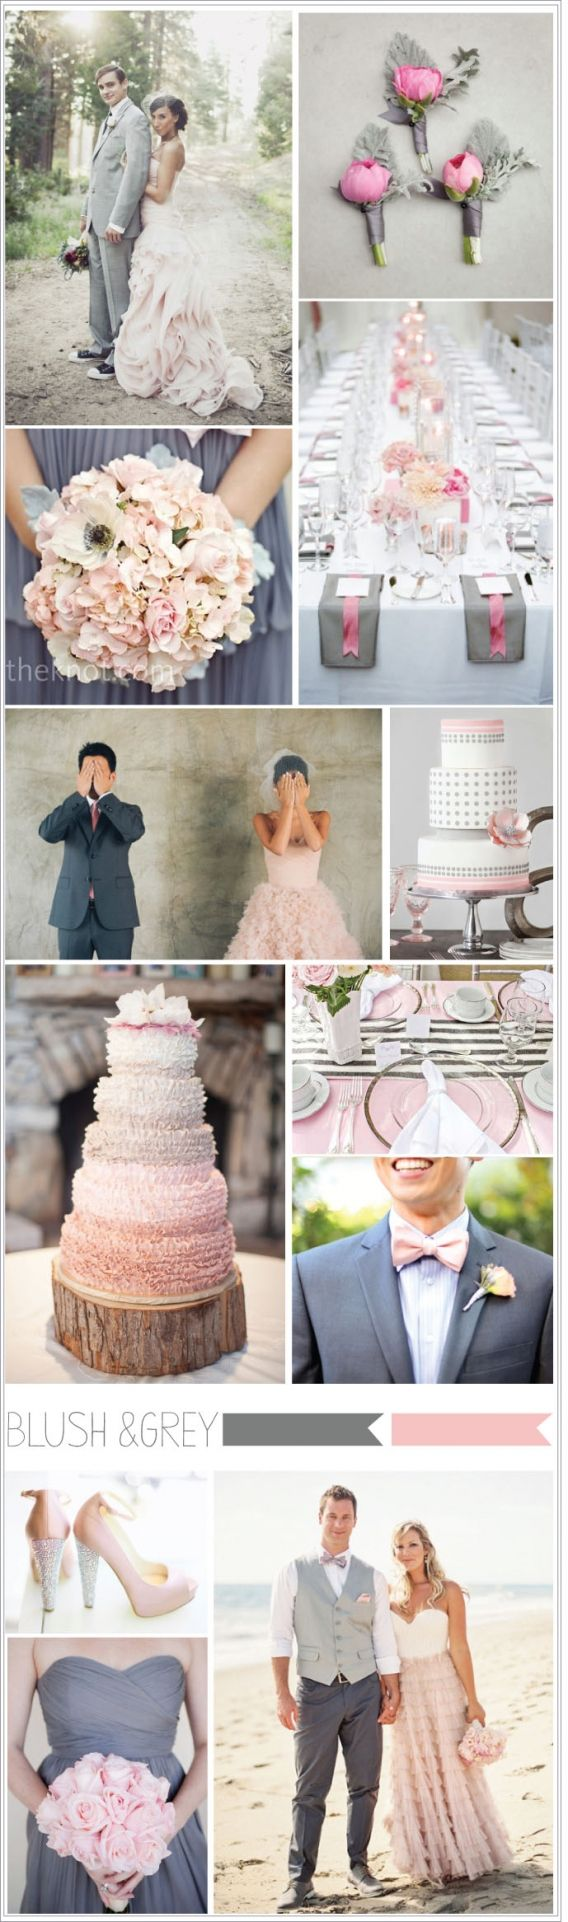 Color Inspiration: Blush and Grey, love the ombré cake idea!